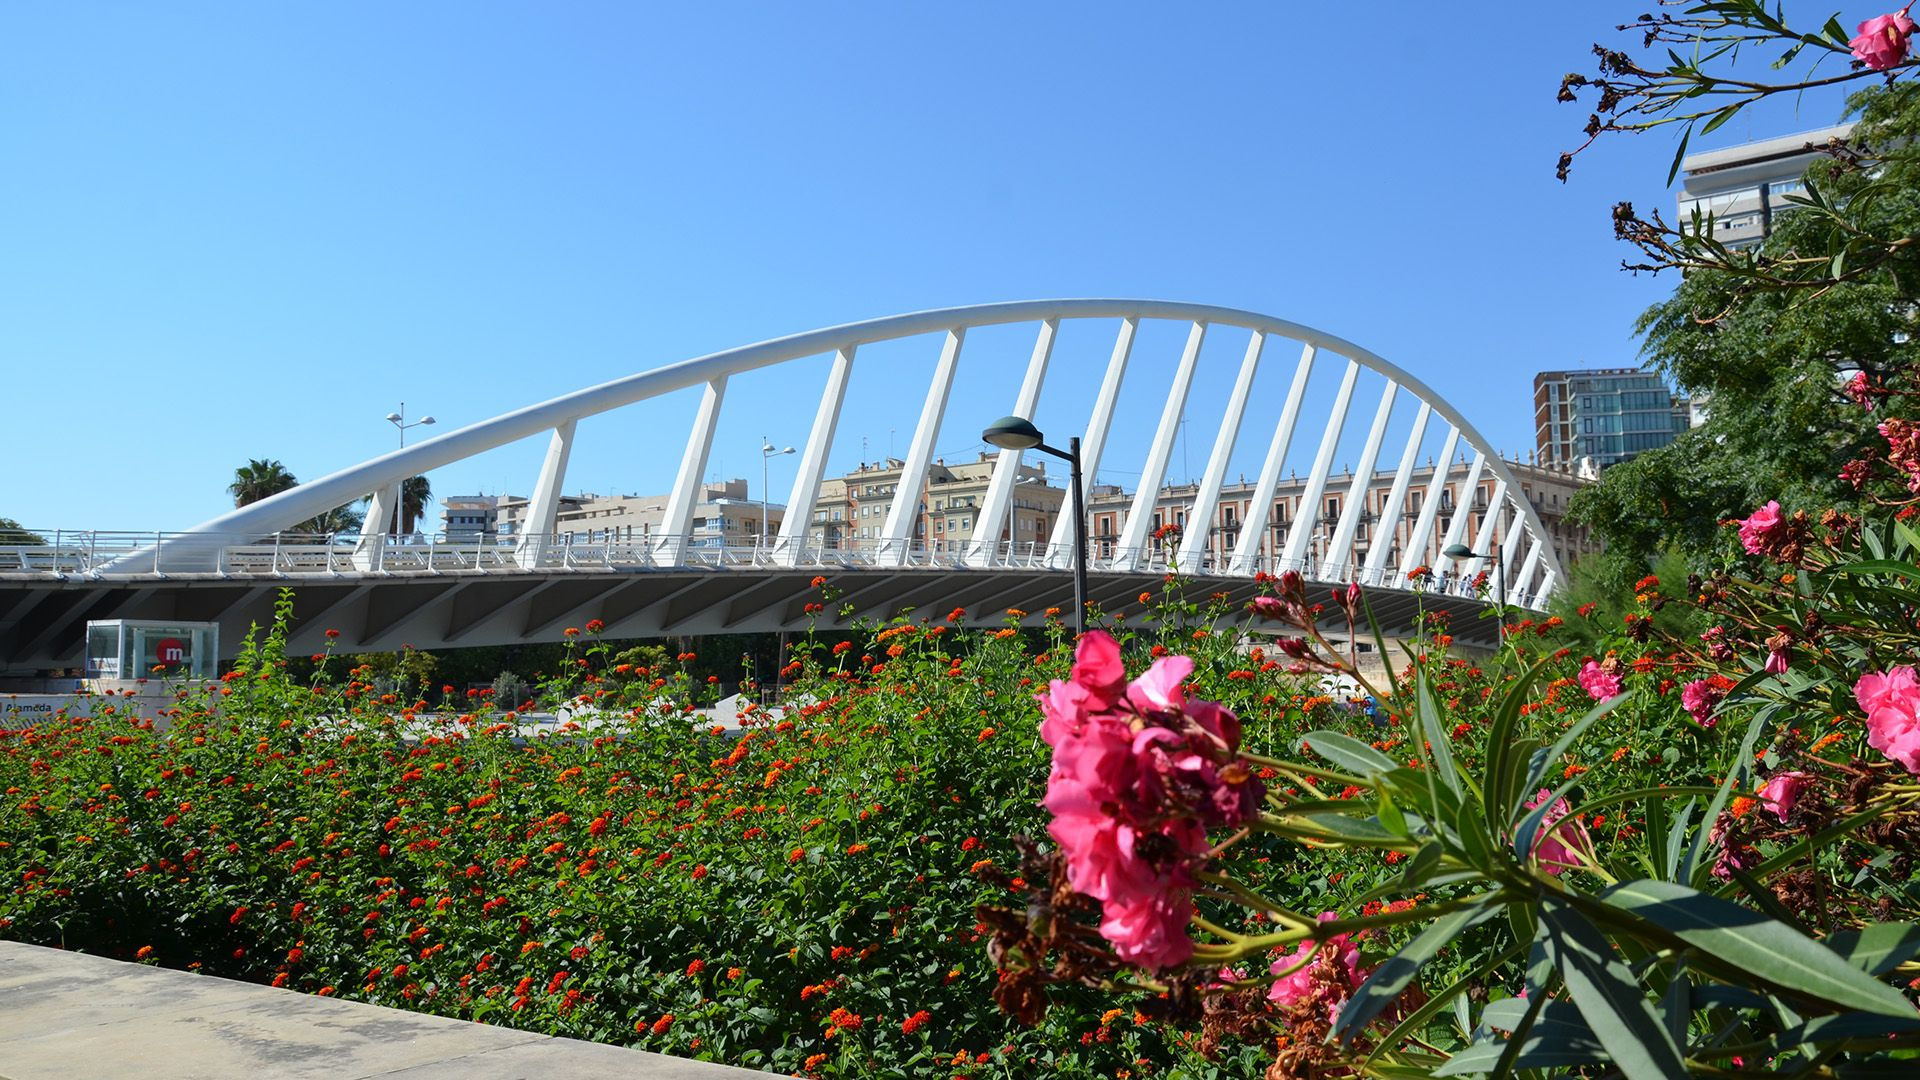 Guided Tour Valencia Gardens and Bridges of the River Turia